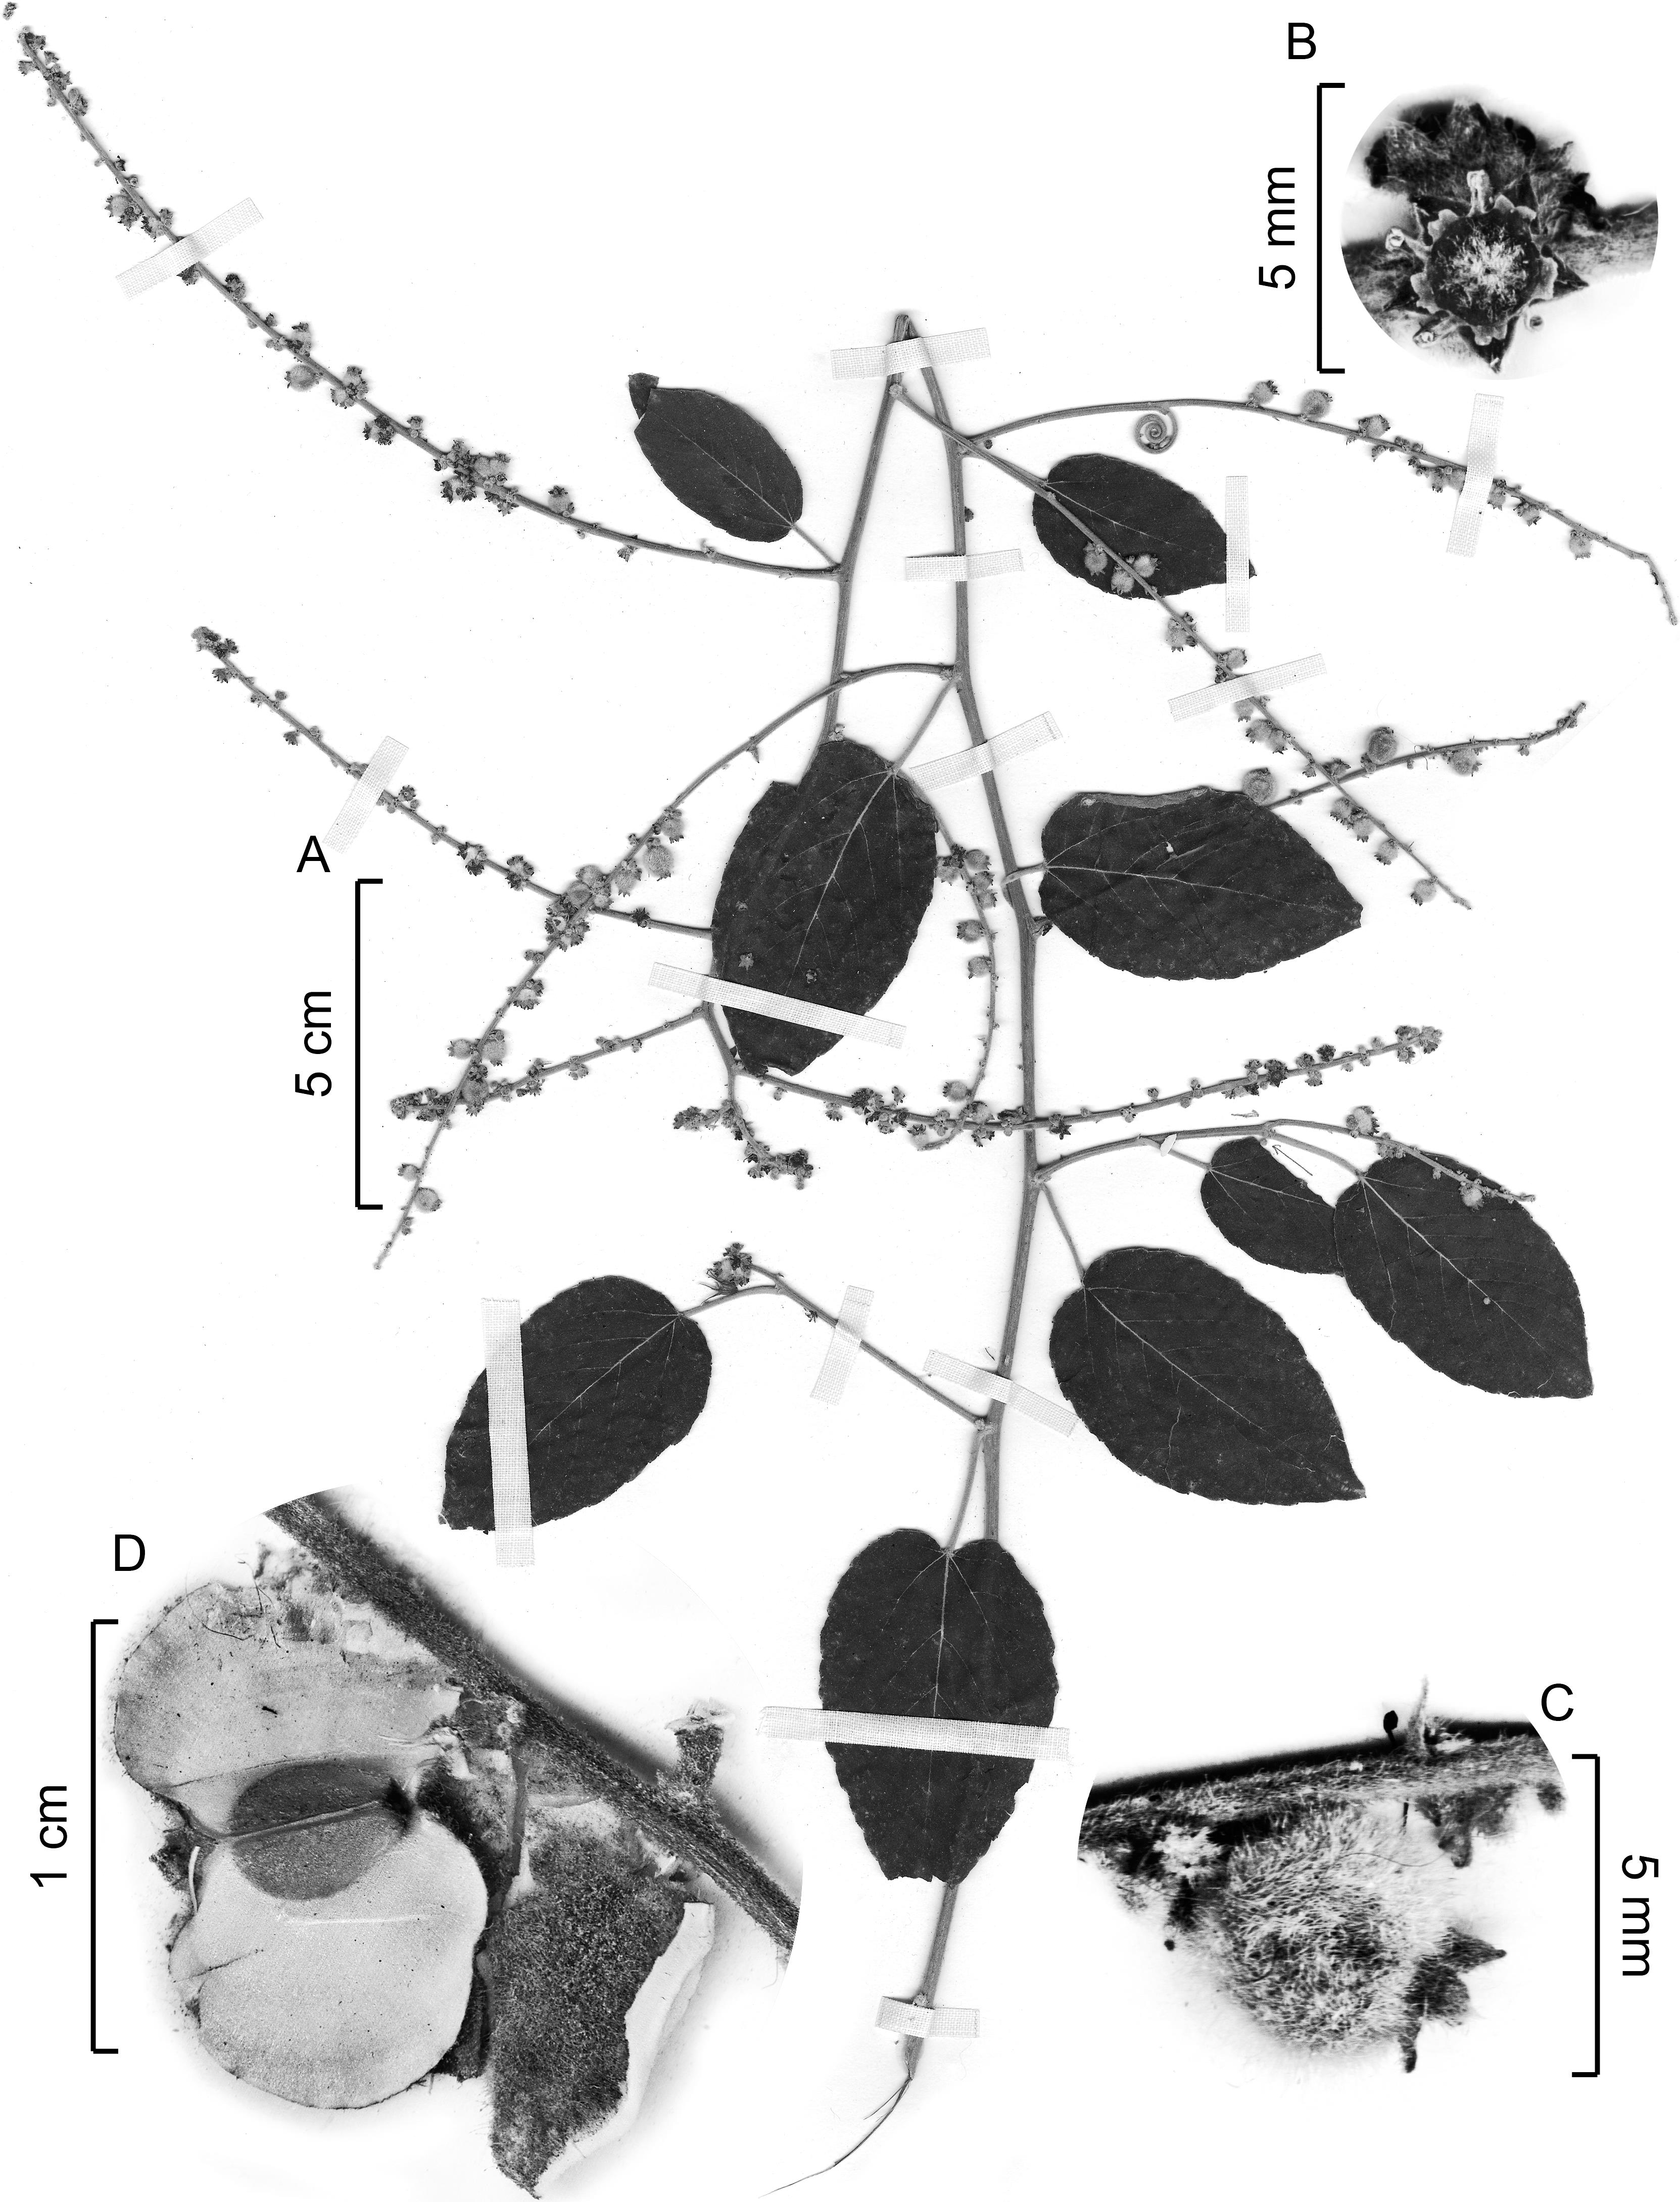 cd2ae7a5fed Taxonomic Revision of Gouania (Rhamnaceae) for North America1